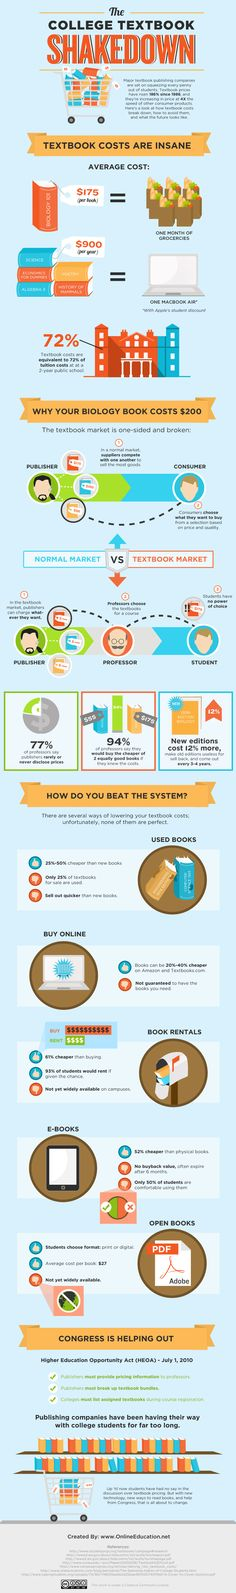 cost of tablets vs textbooks